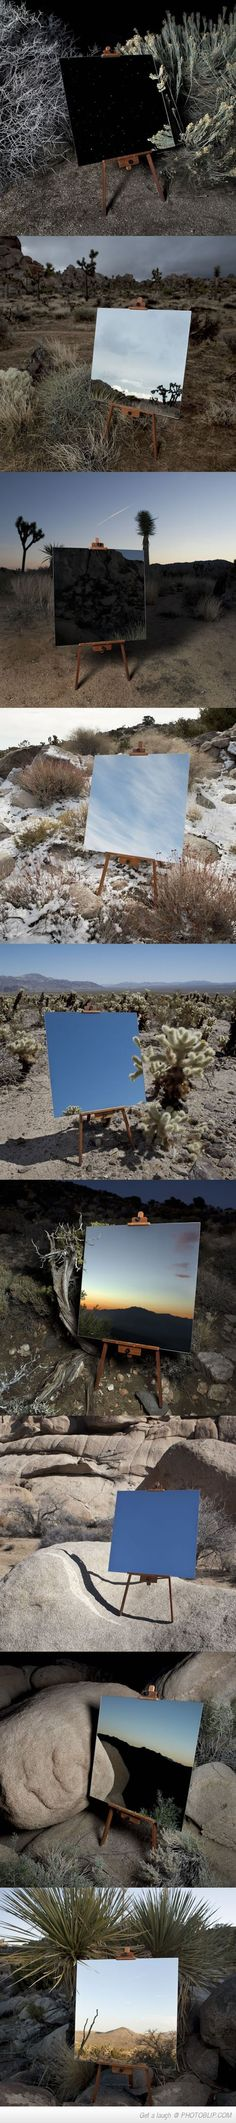 Photographs Of A Mirror On An Easel That Look Like Painting.